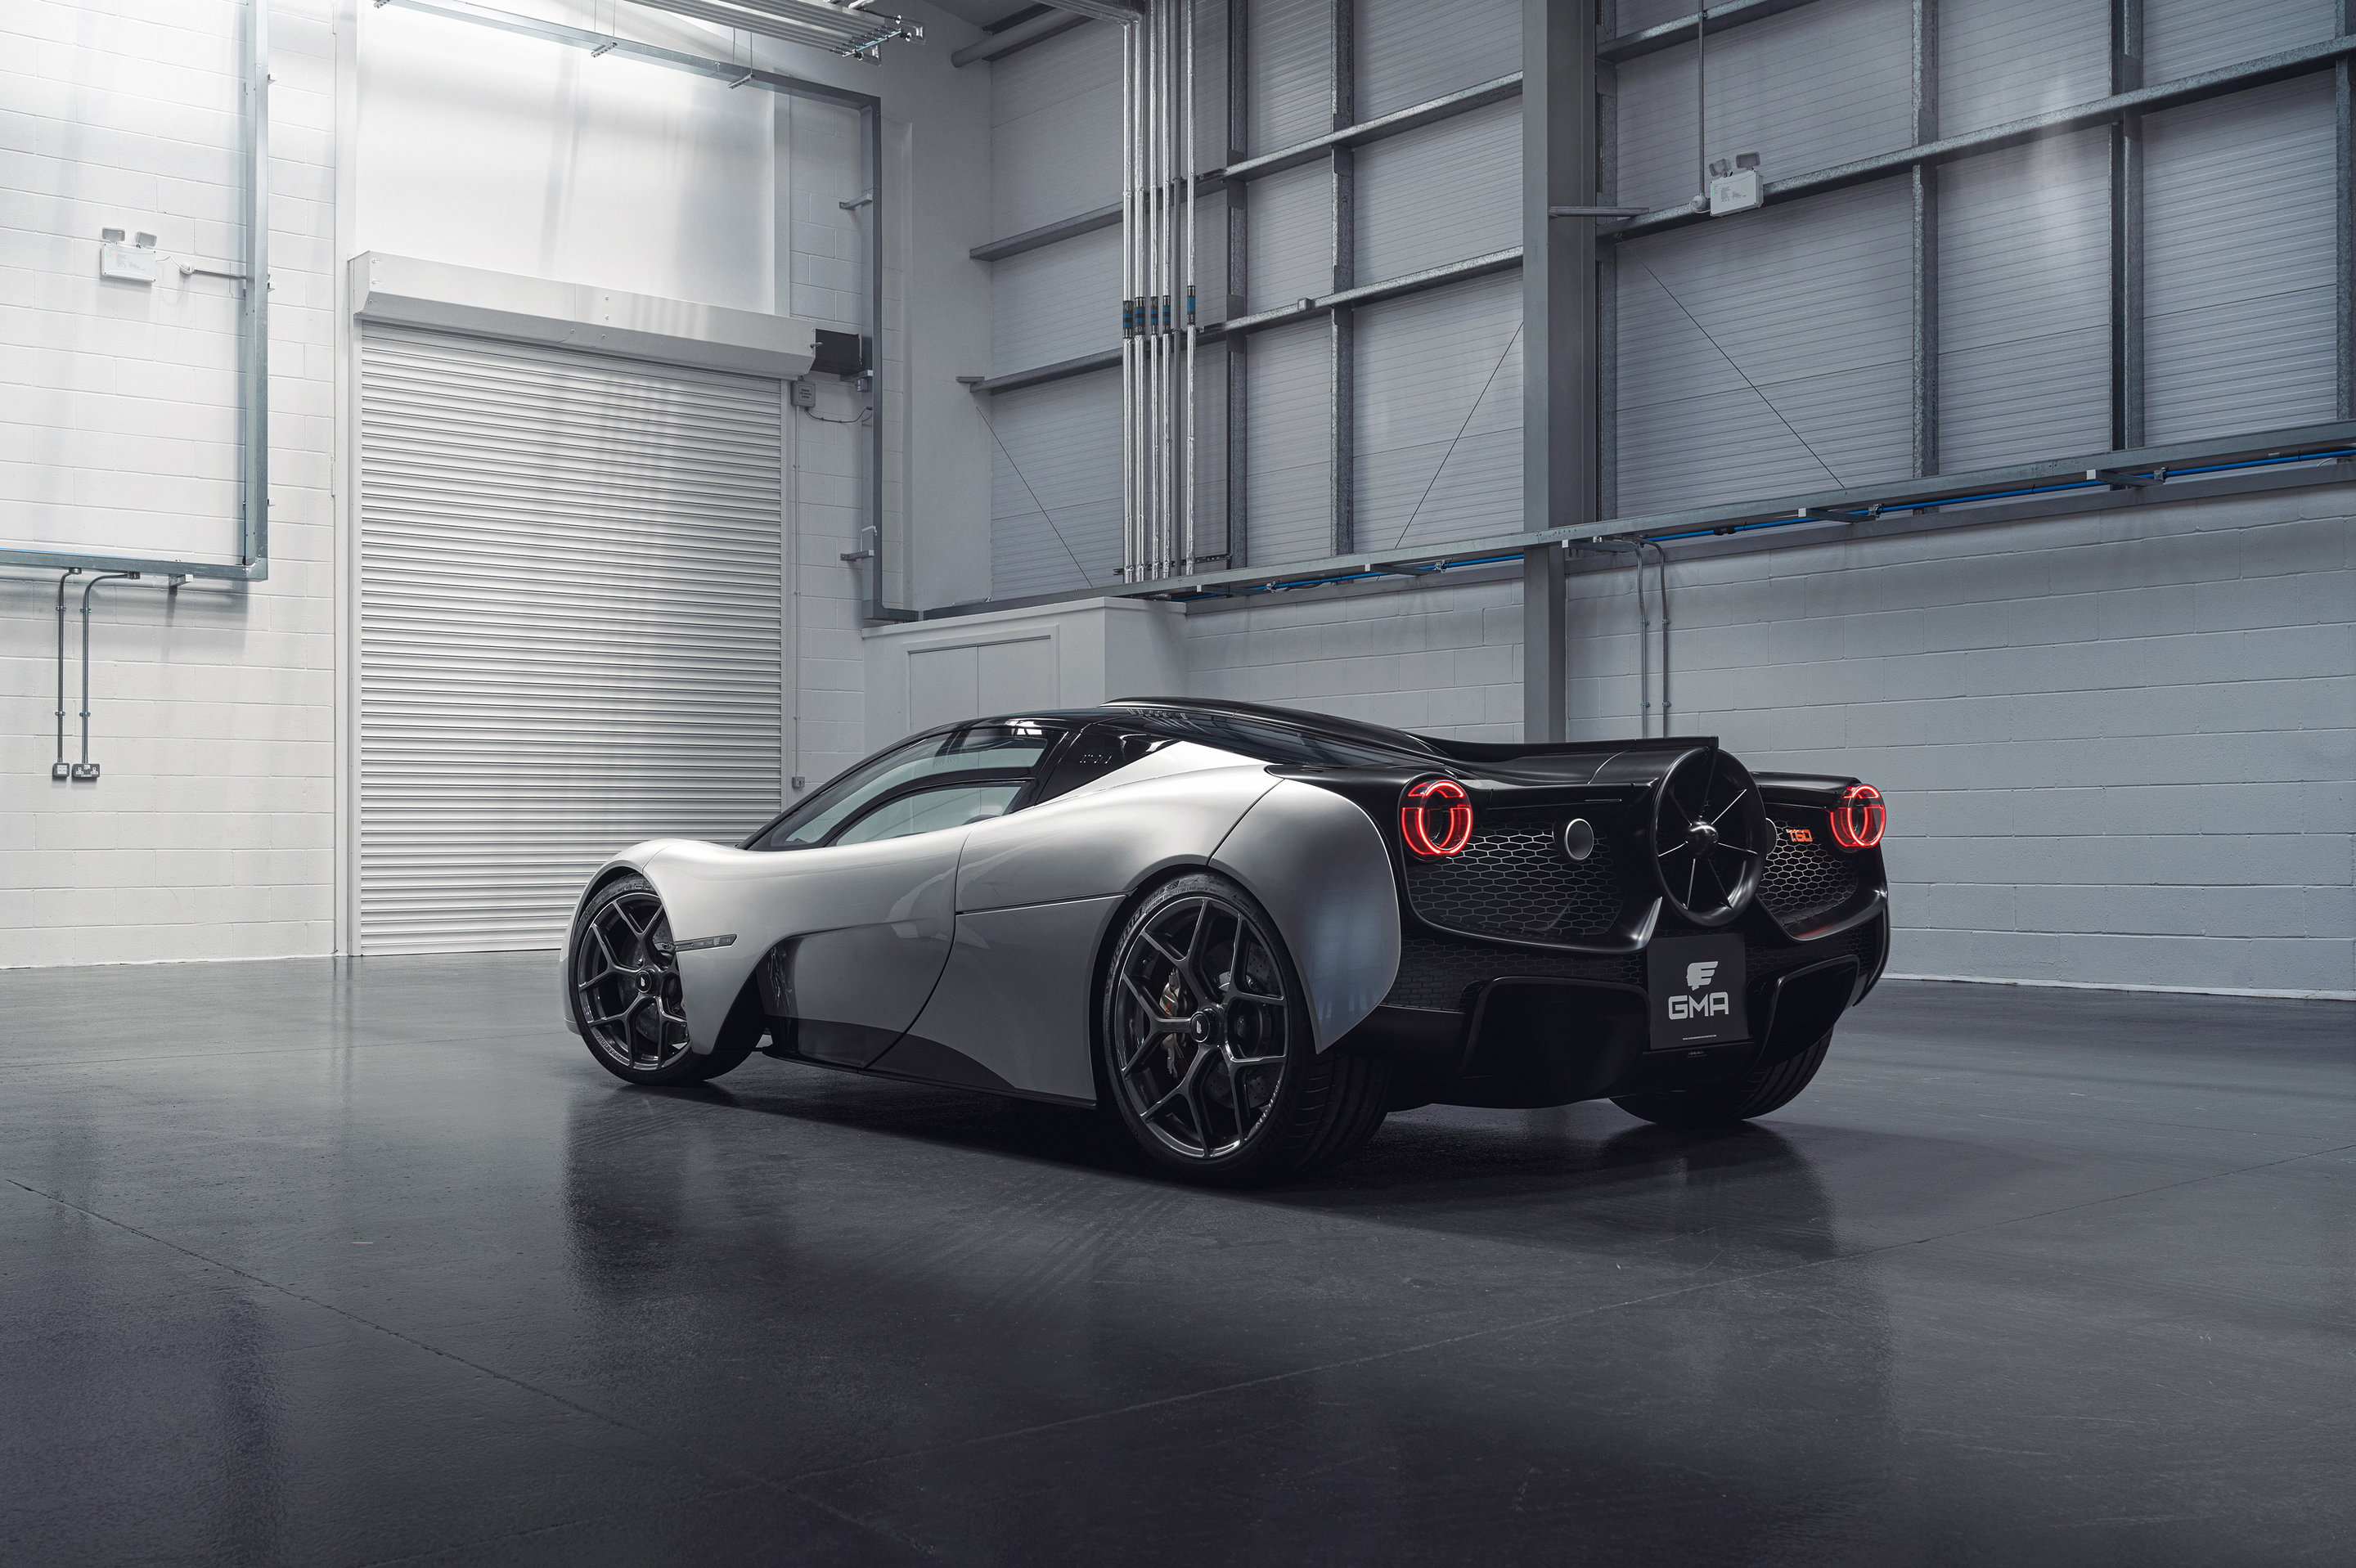 Gordon Murray T50 Supercar